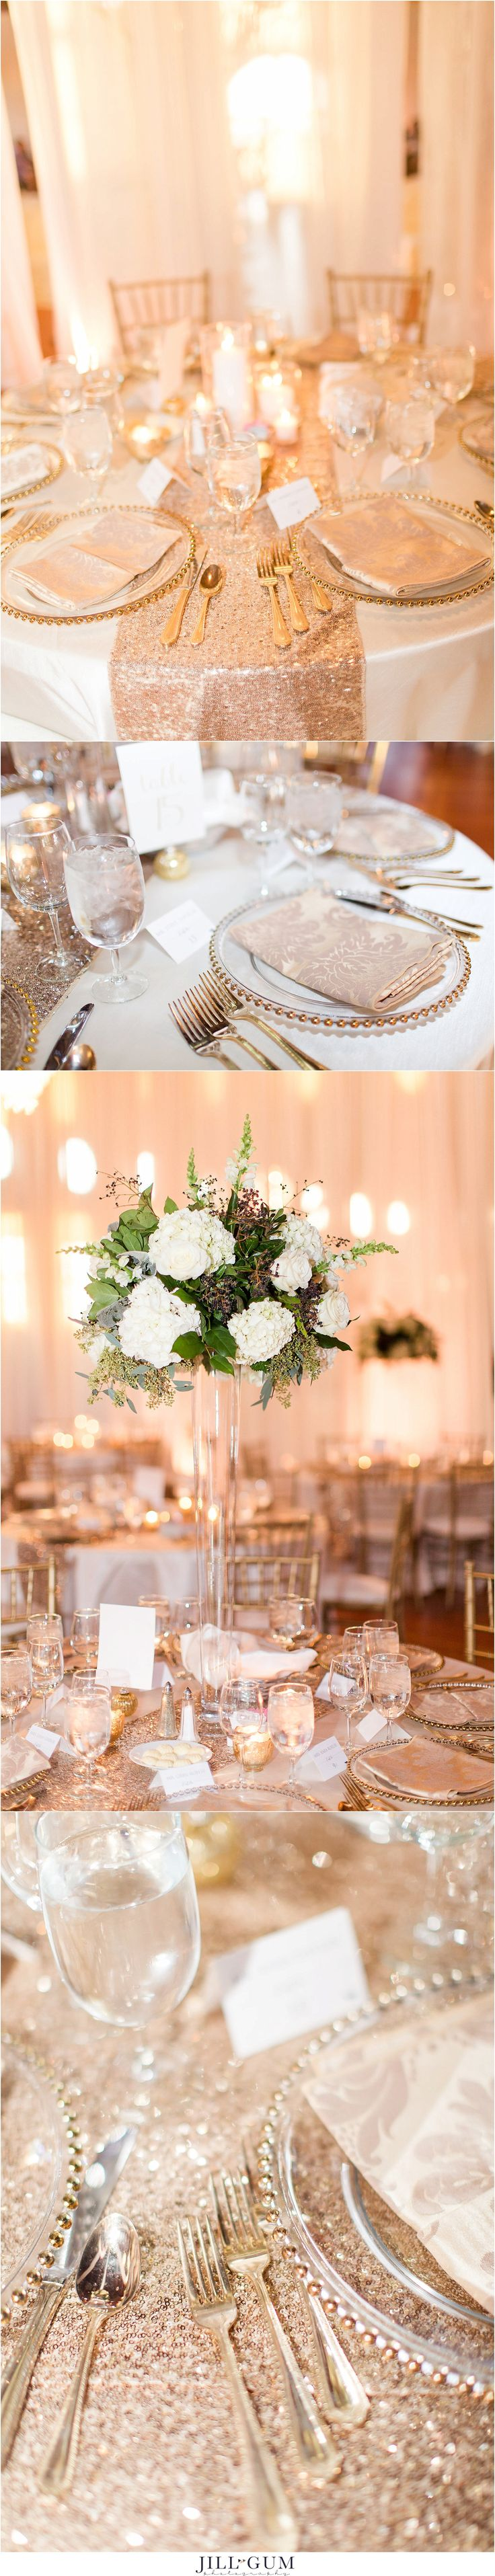 Jill Gum Photography | Wedding Reception Details | Reception Table Centerpieces | Glitter Table Cloth | Rose Gold | Navy | Gold | Ivory | February Wedding | Pink Anchor Weddings | IL Wedding Photographer | Artisan's Building Springfield, IL